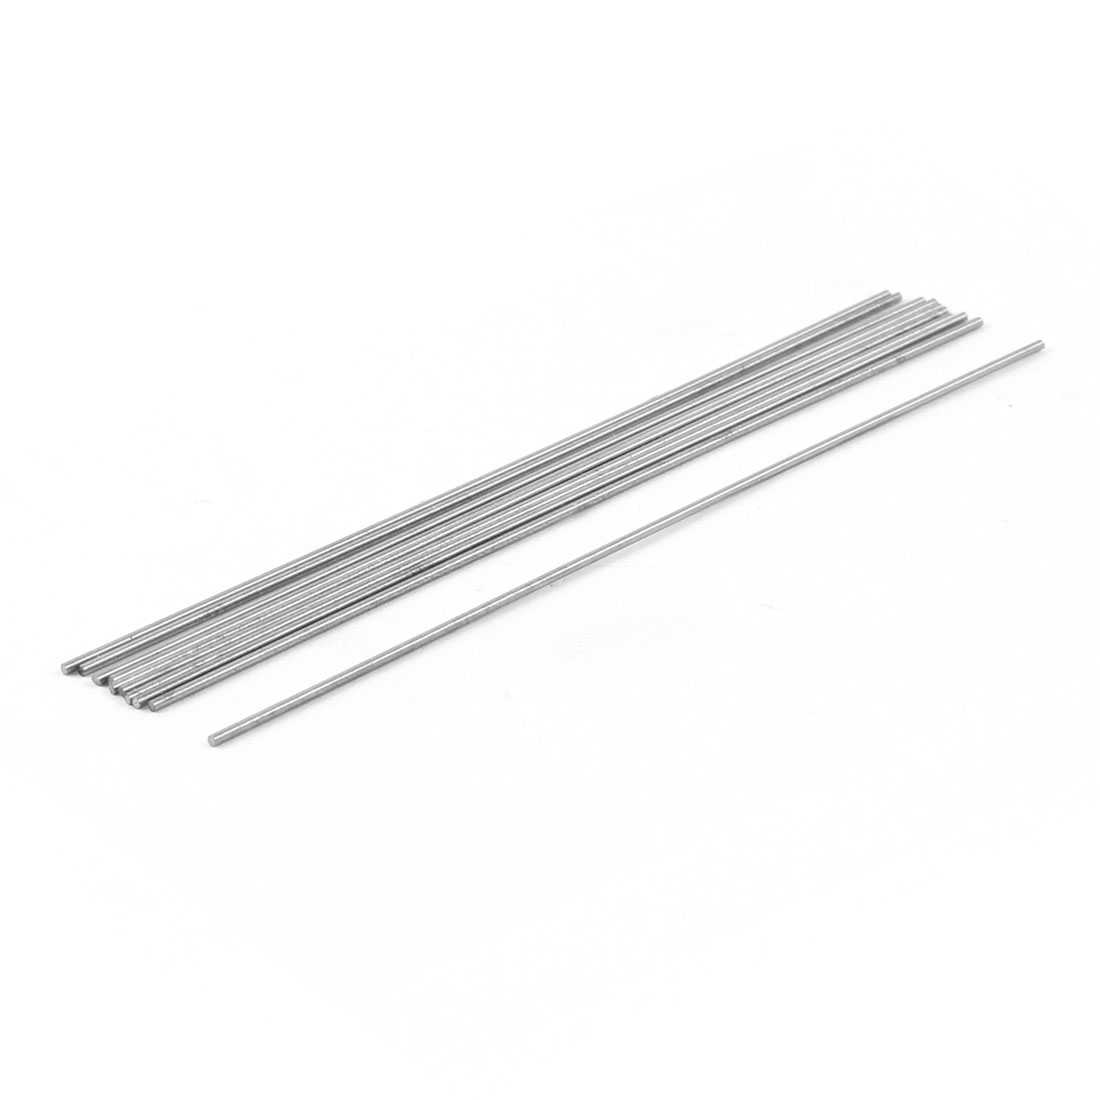 Unique Bargains 10 Pcs HSS High Speed Steel Round Turning Lathe Bars 1mm x 100mm